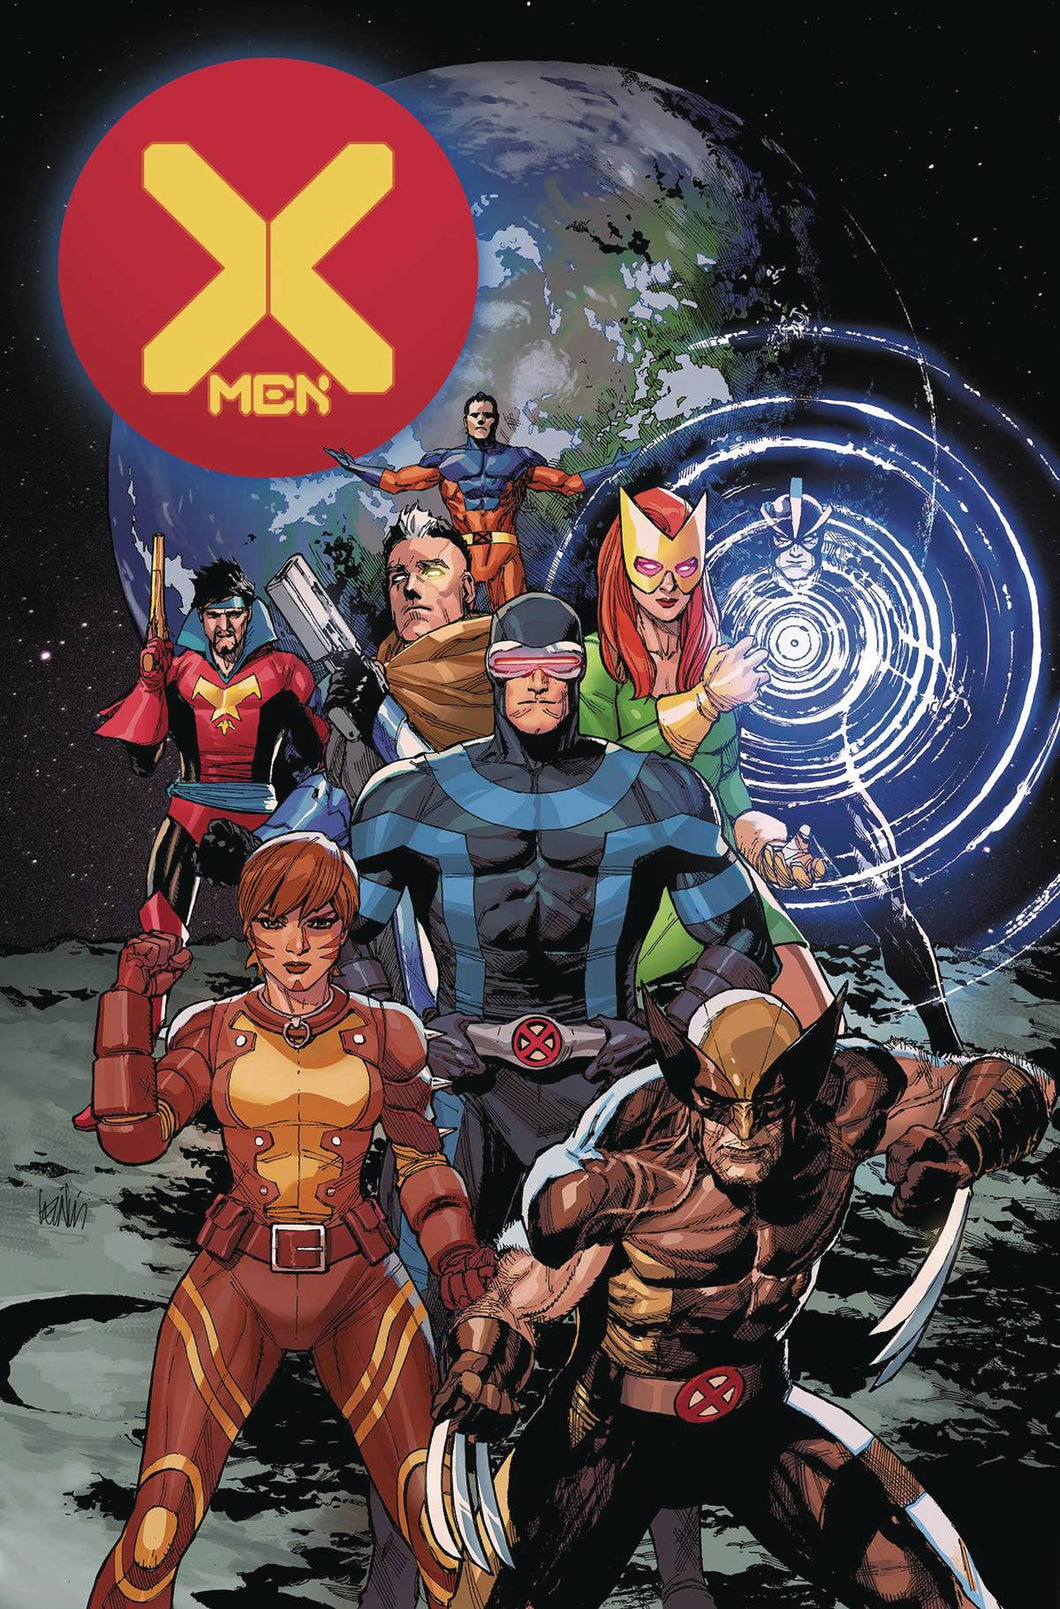 X-MEN BY JONATHAN HICKMAN VOL 01 TP